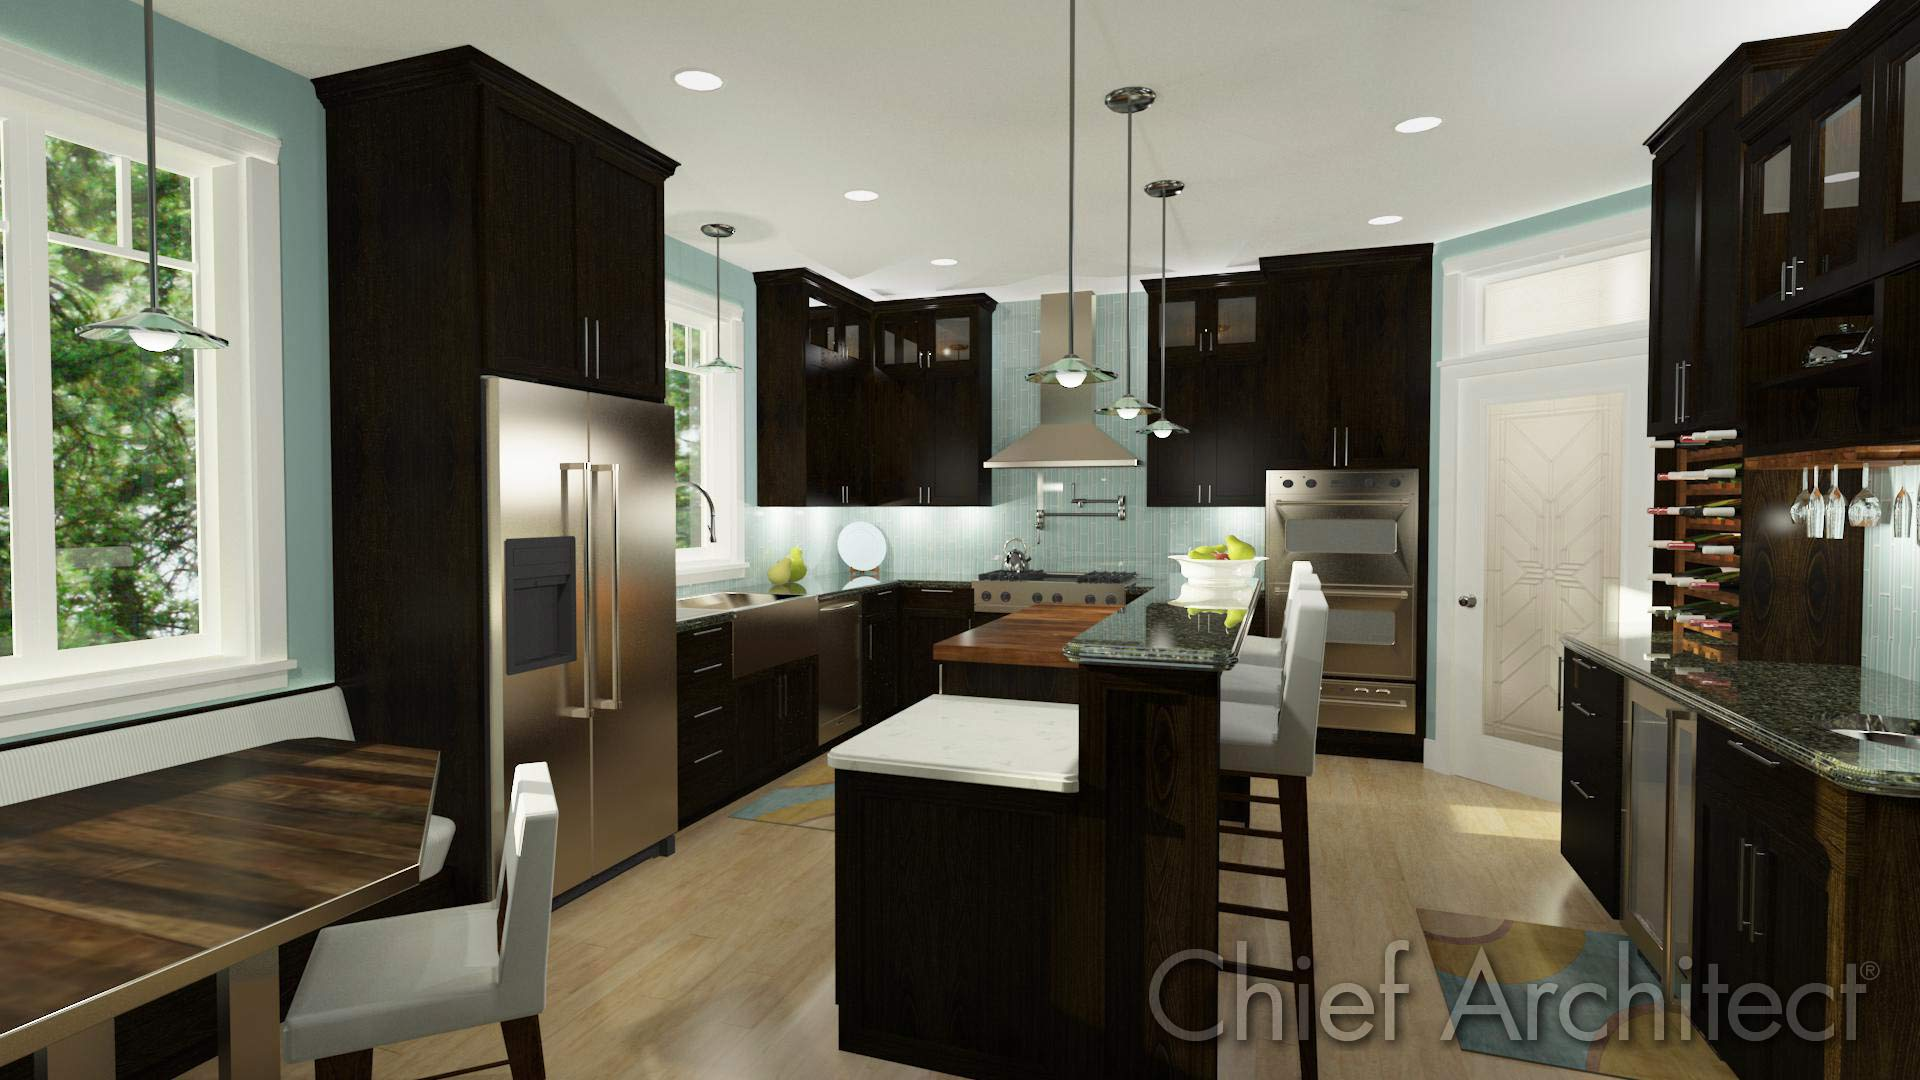 Chief Architect Home Design Software - Sample Gallery